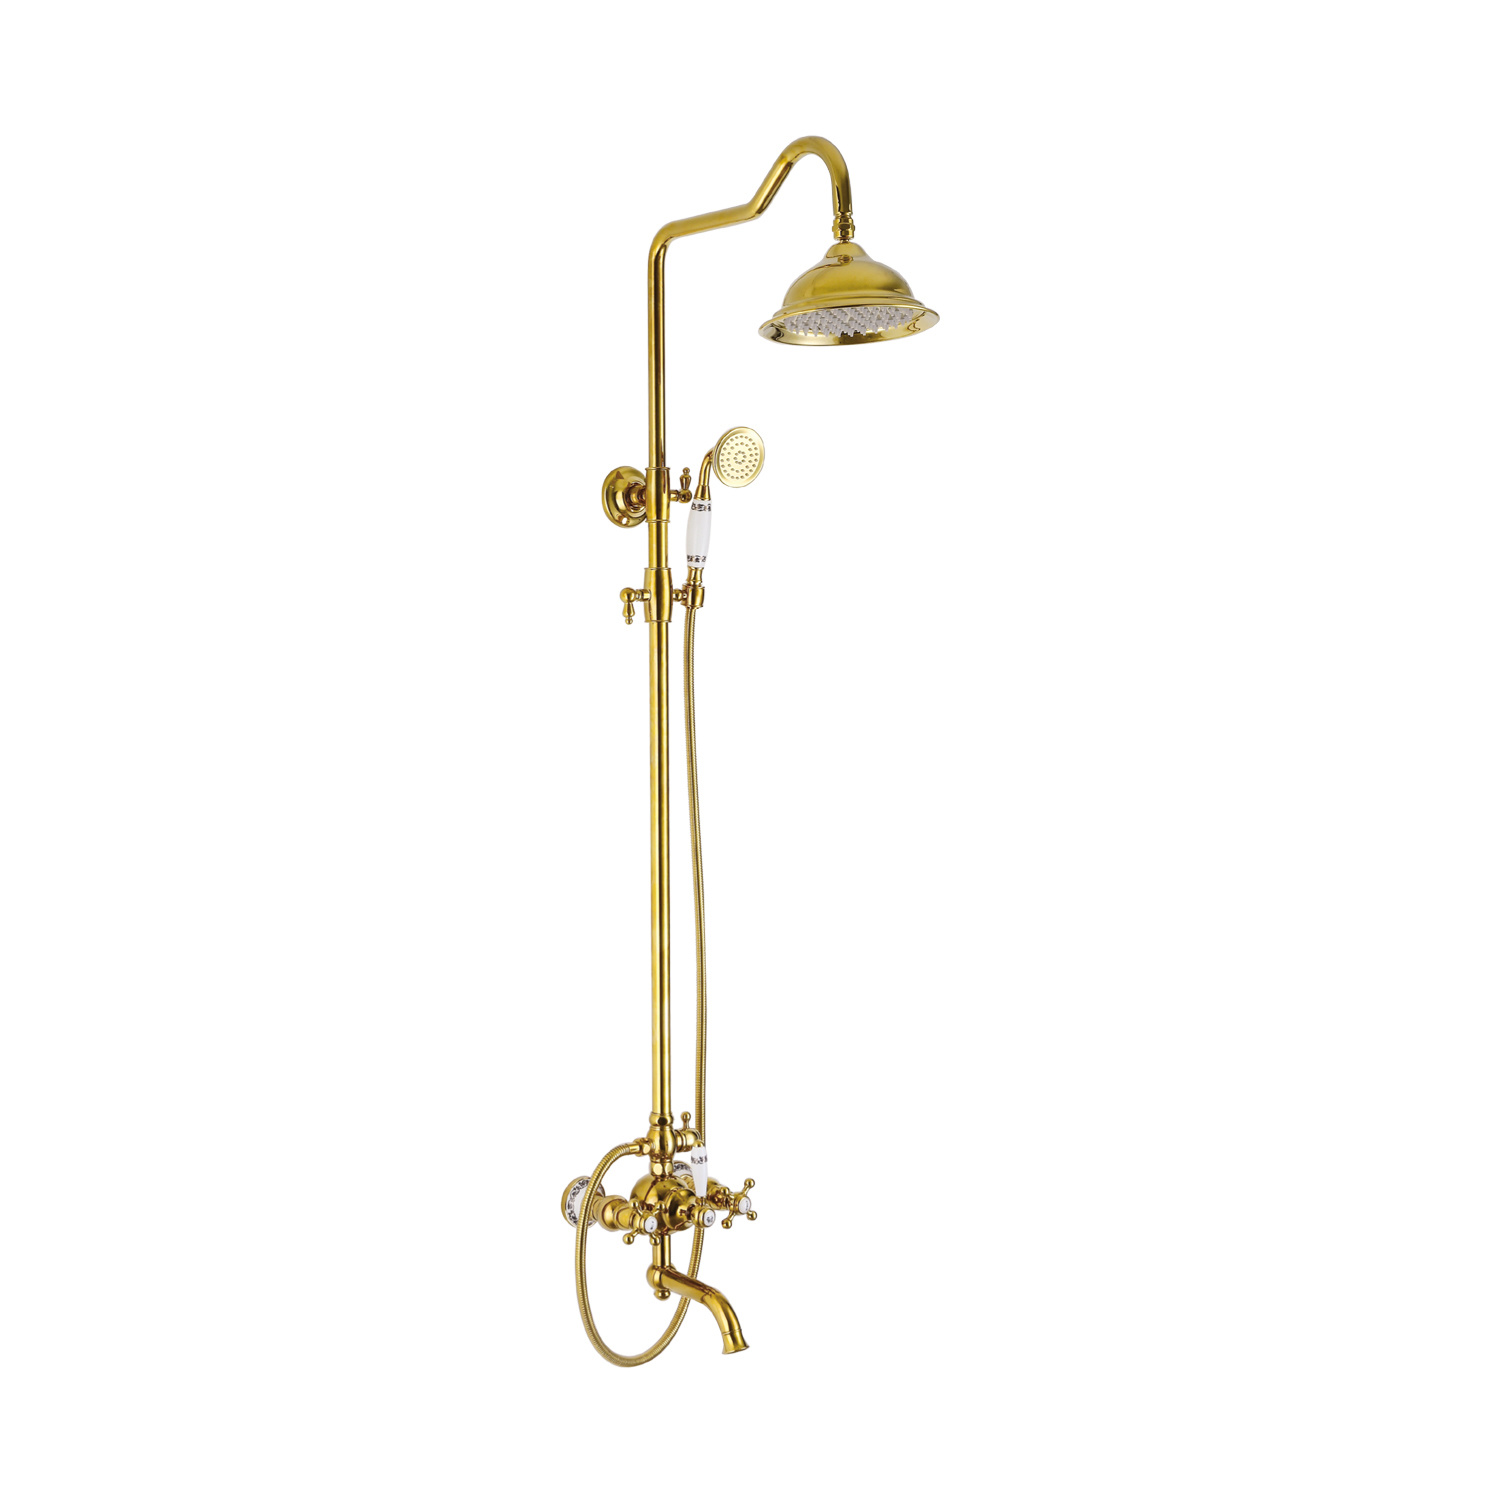 China Gold Plated Rain Shower And Handheld Shower Combo